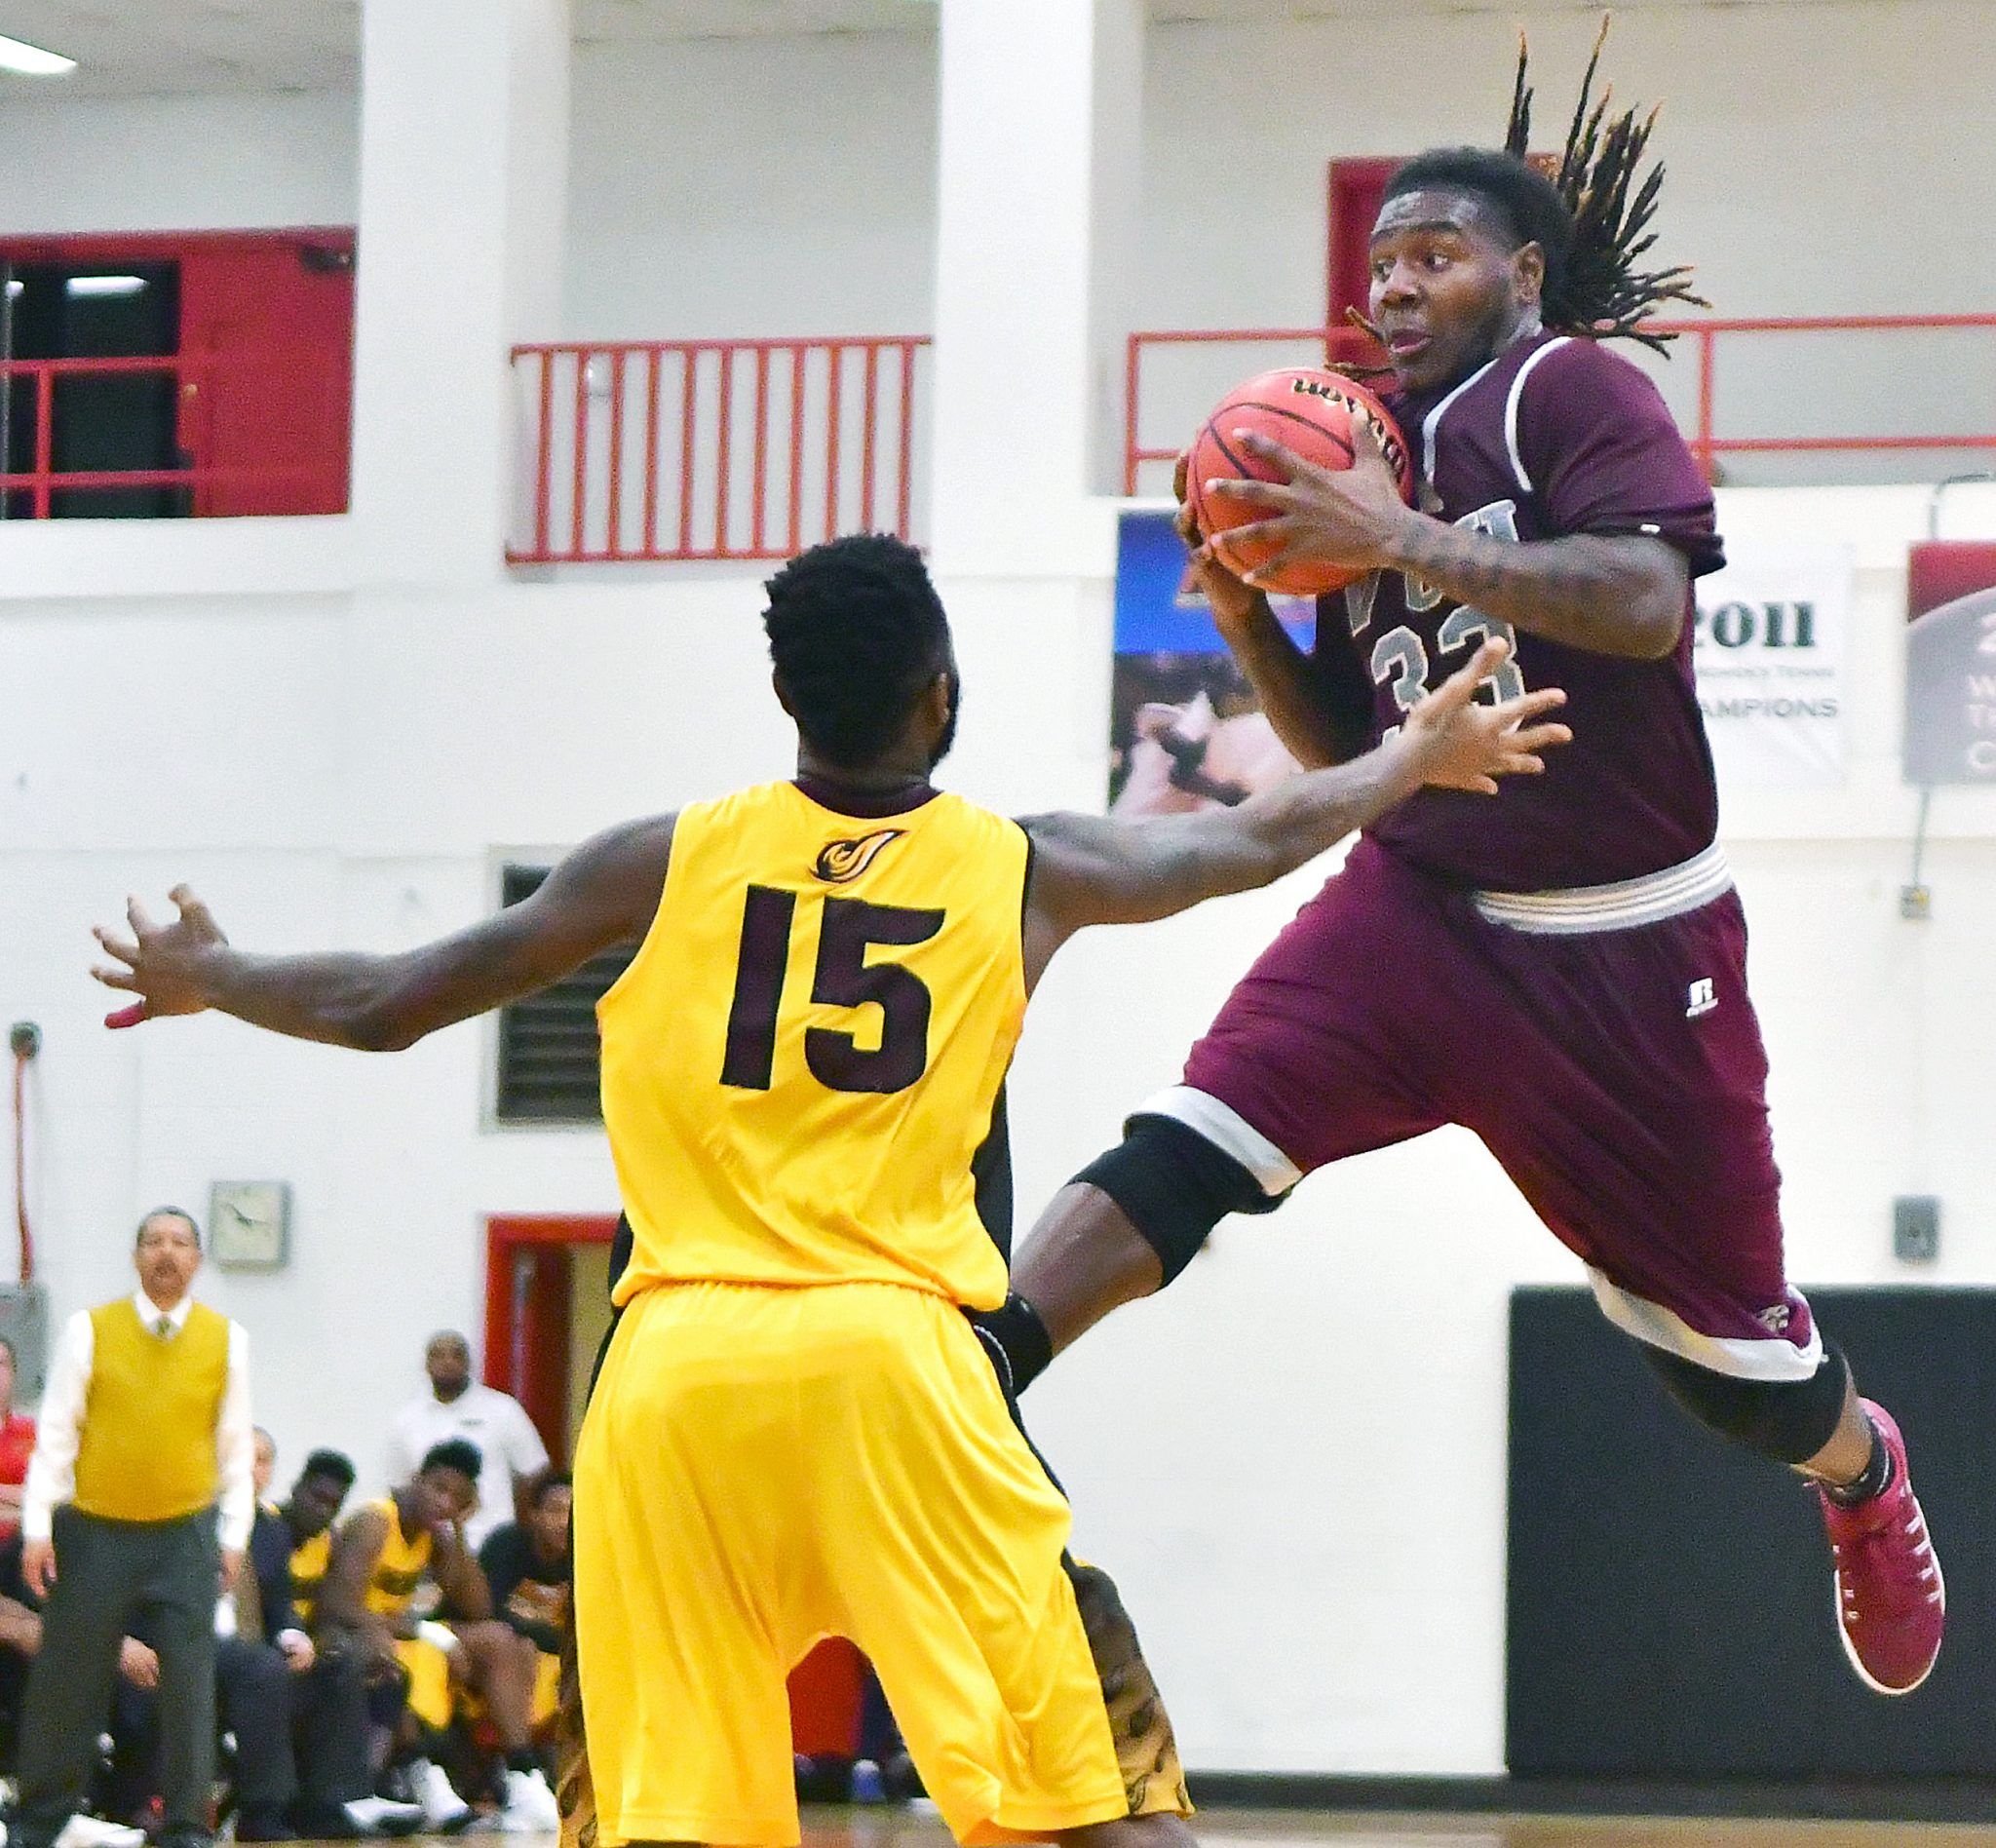 Virginia Union forward Tavon Mealy takes flight against University of the District of Columbia guard Joseph Nickerson in the second half of Virginia Union's 71-69 win at UDC Gymnasium in Northwest on Wednesday, Nov. 30. /Photo by John E. De Freitas